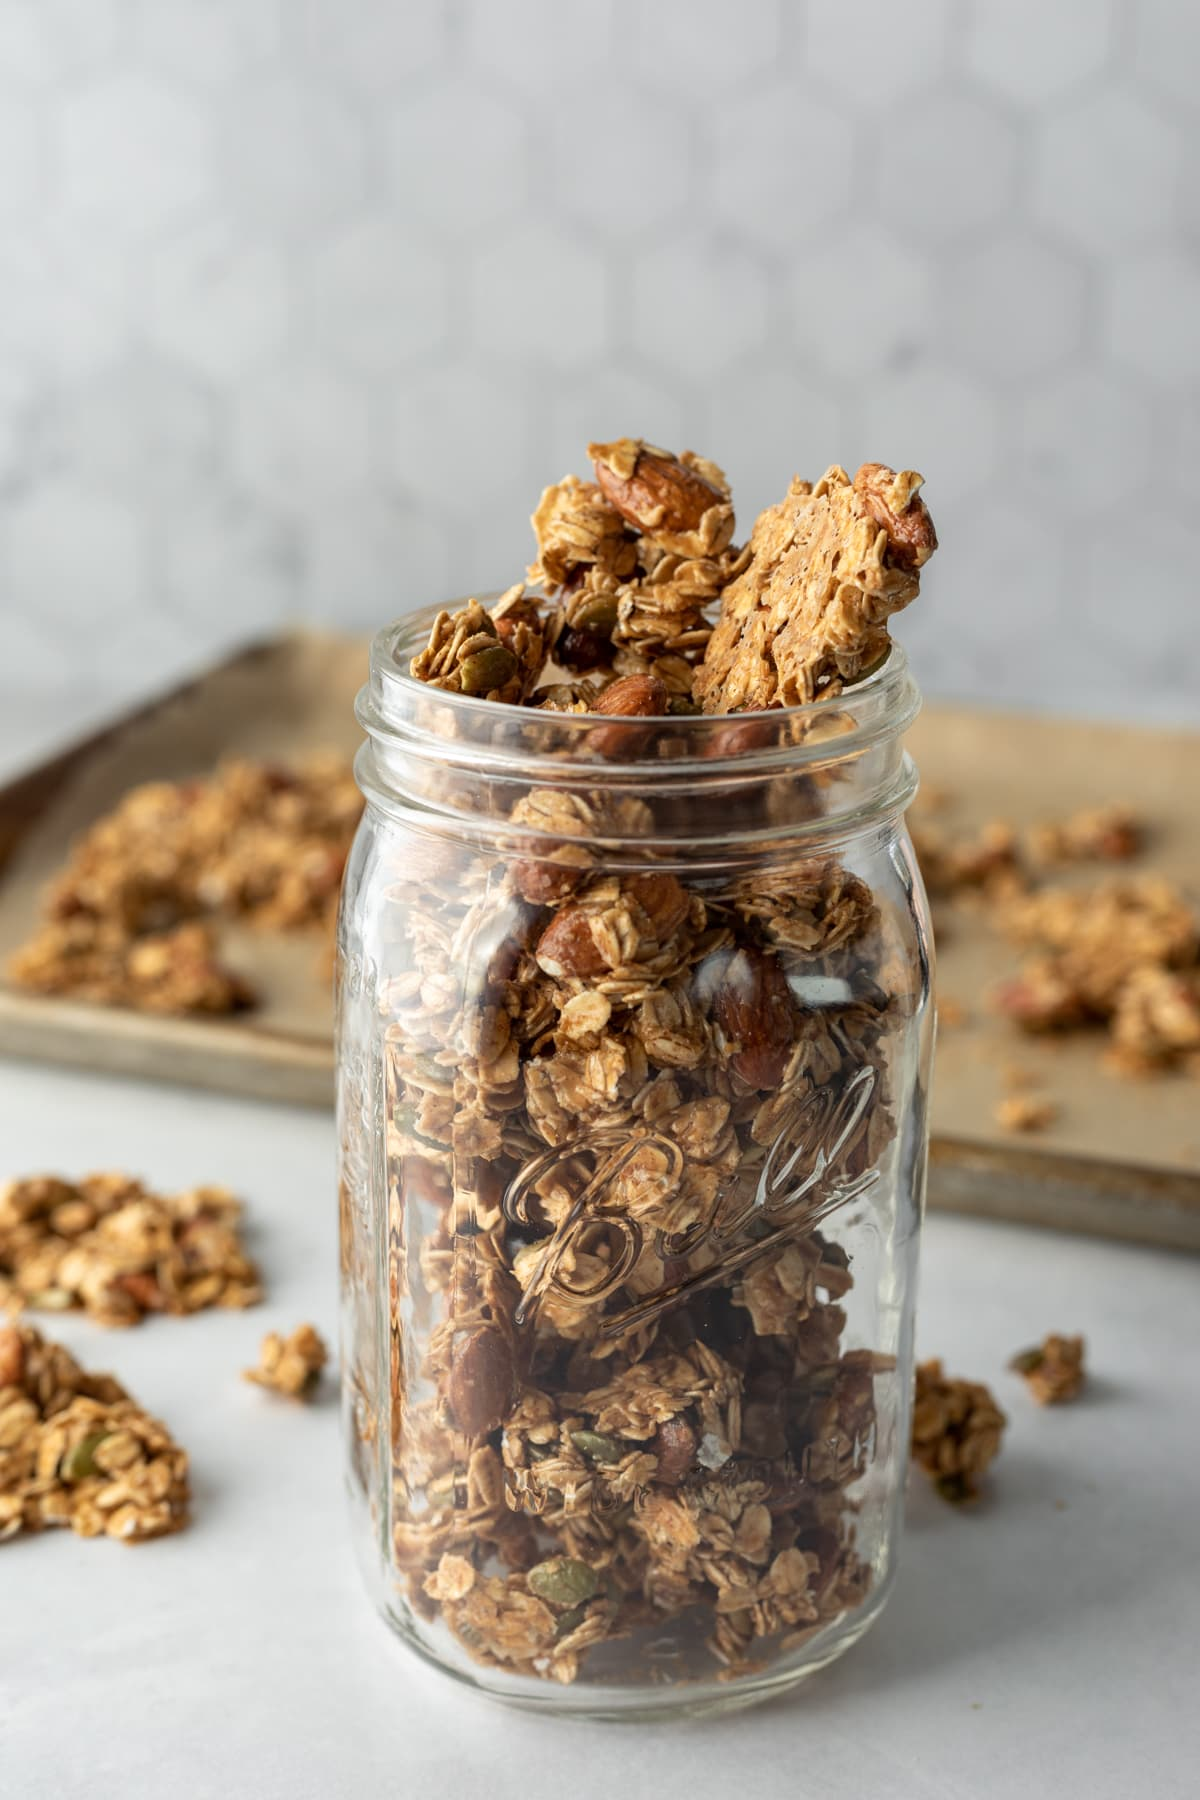 mason jar filled with granola clusters with baking sheet in background